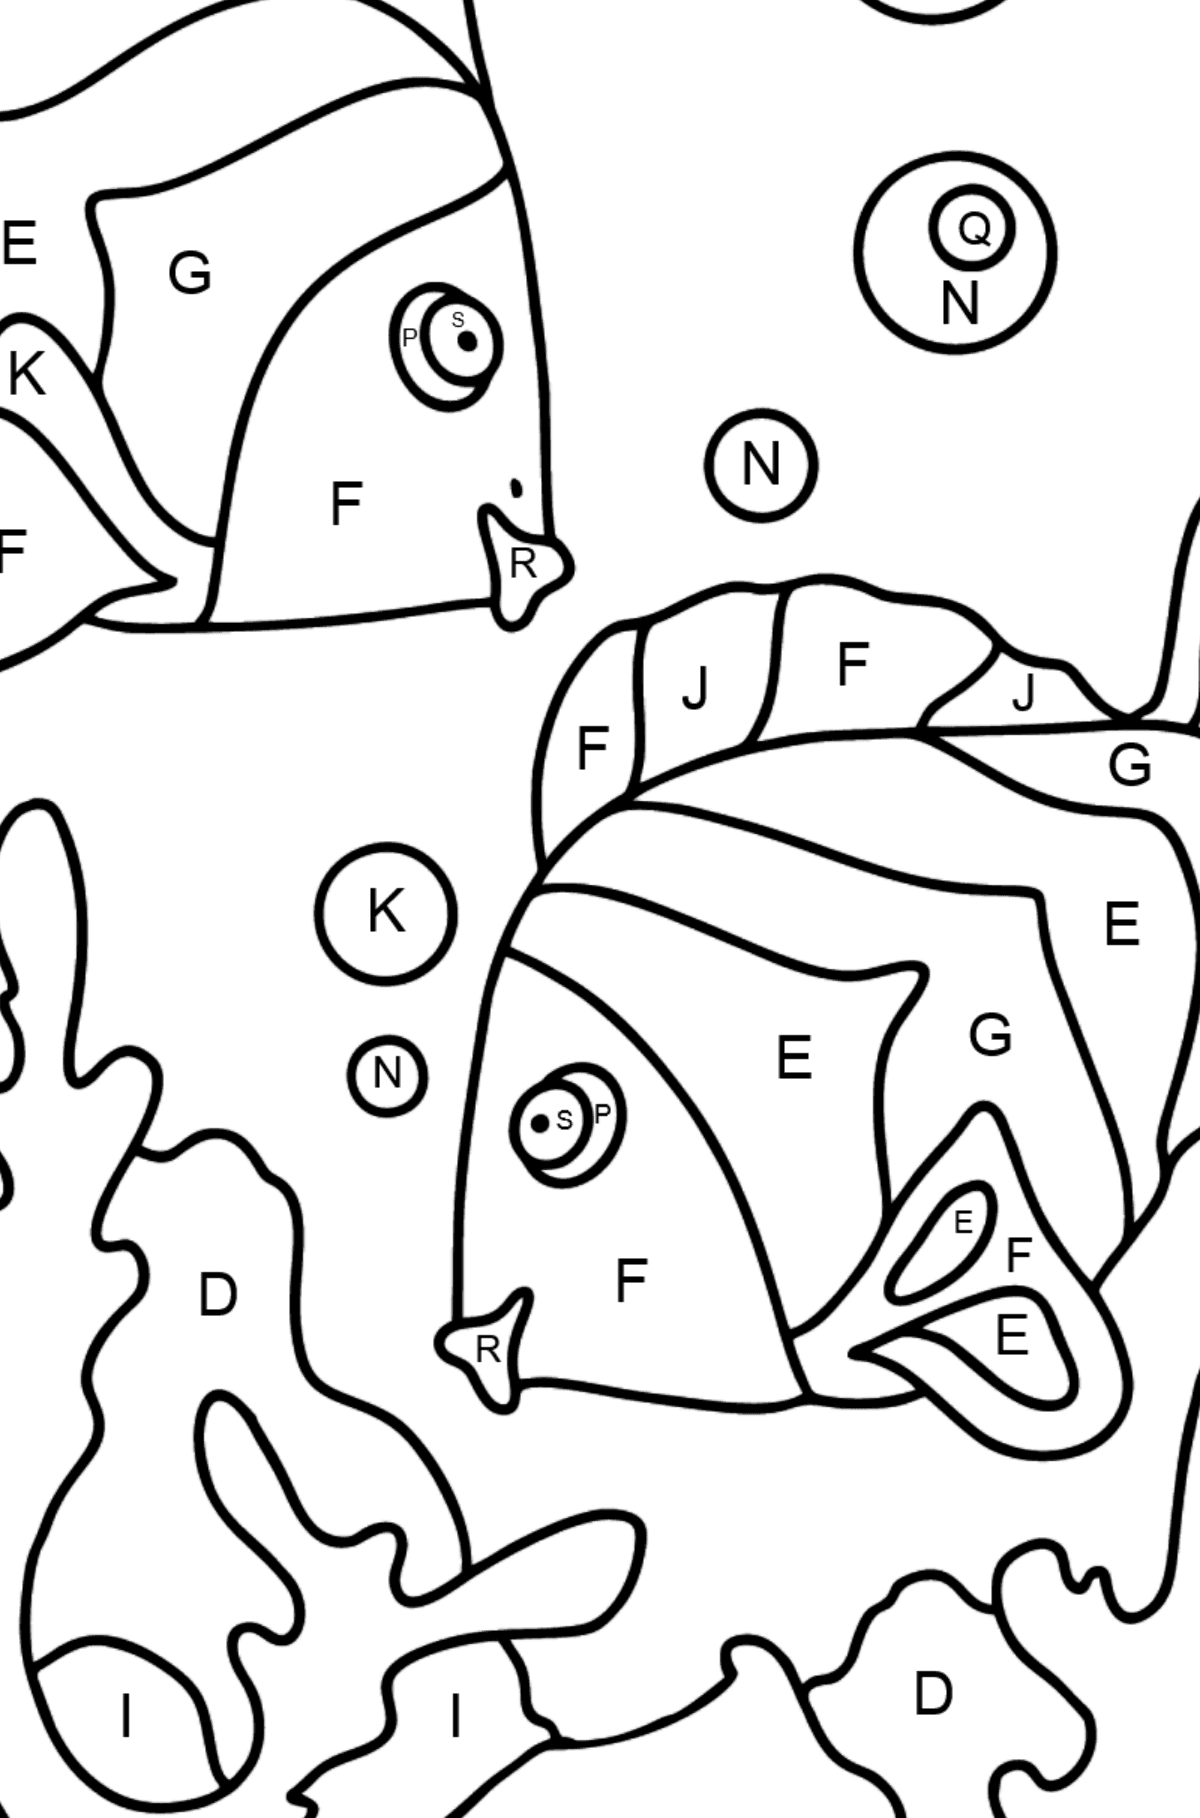 Coloring Page - Fish are Swimming Very Energetically - Coloring by Letters for Kids